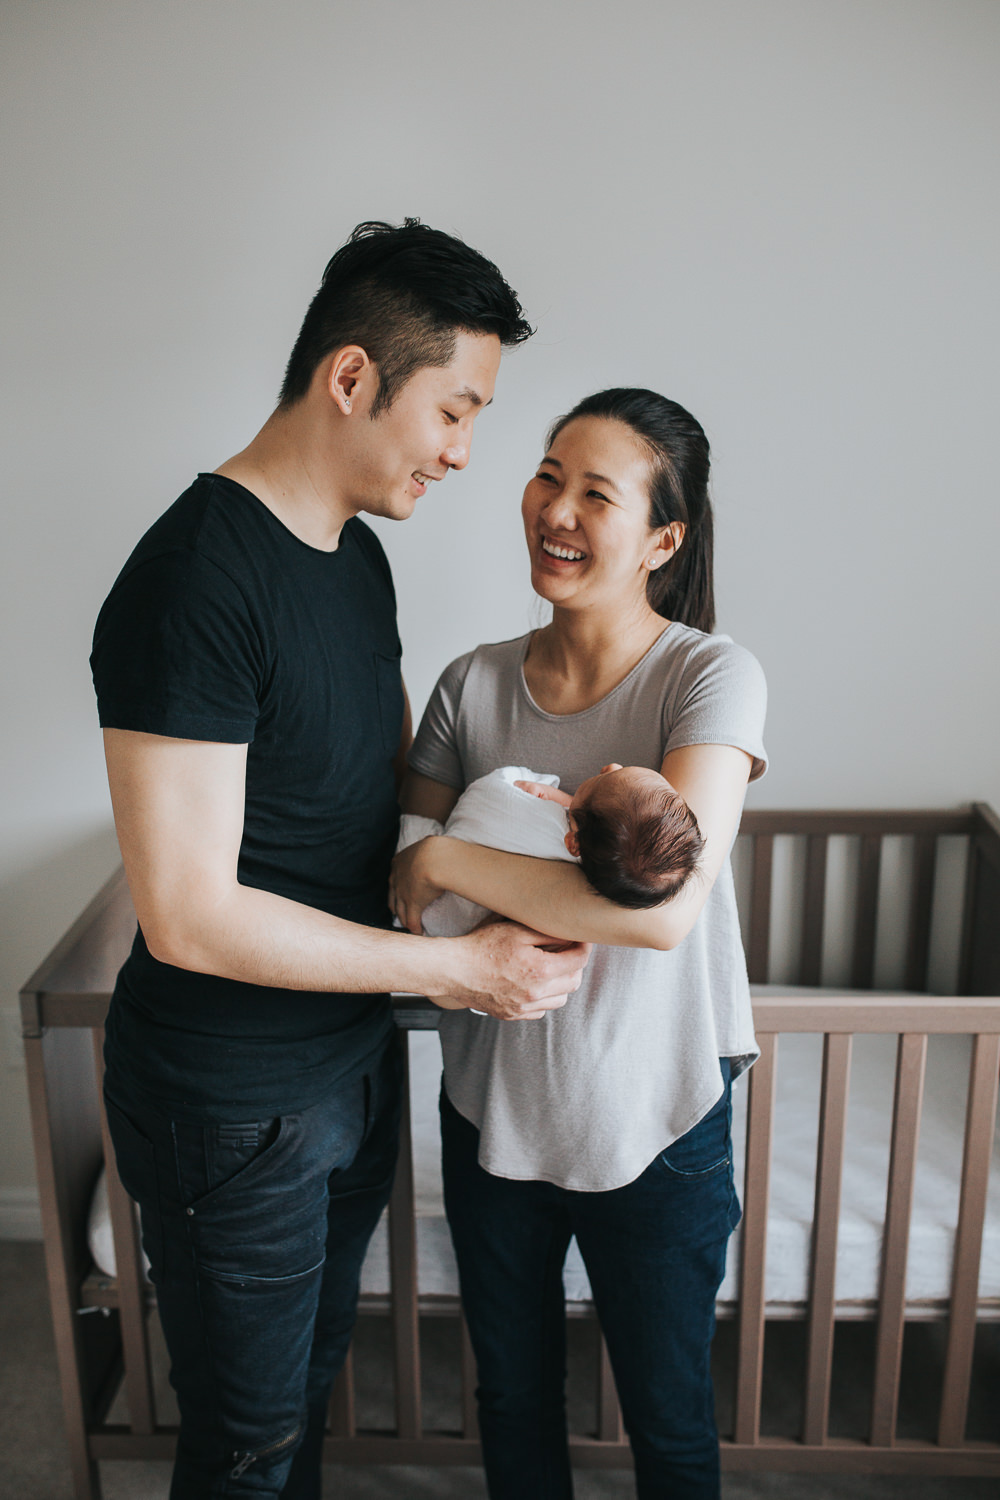 New parents laughing and holding 2 week old baby son in nursery - Stouffville Lifestyle Photos